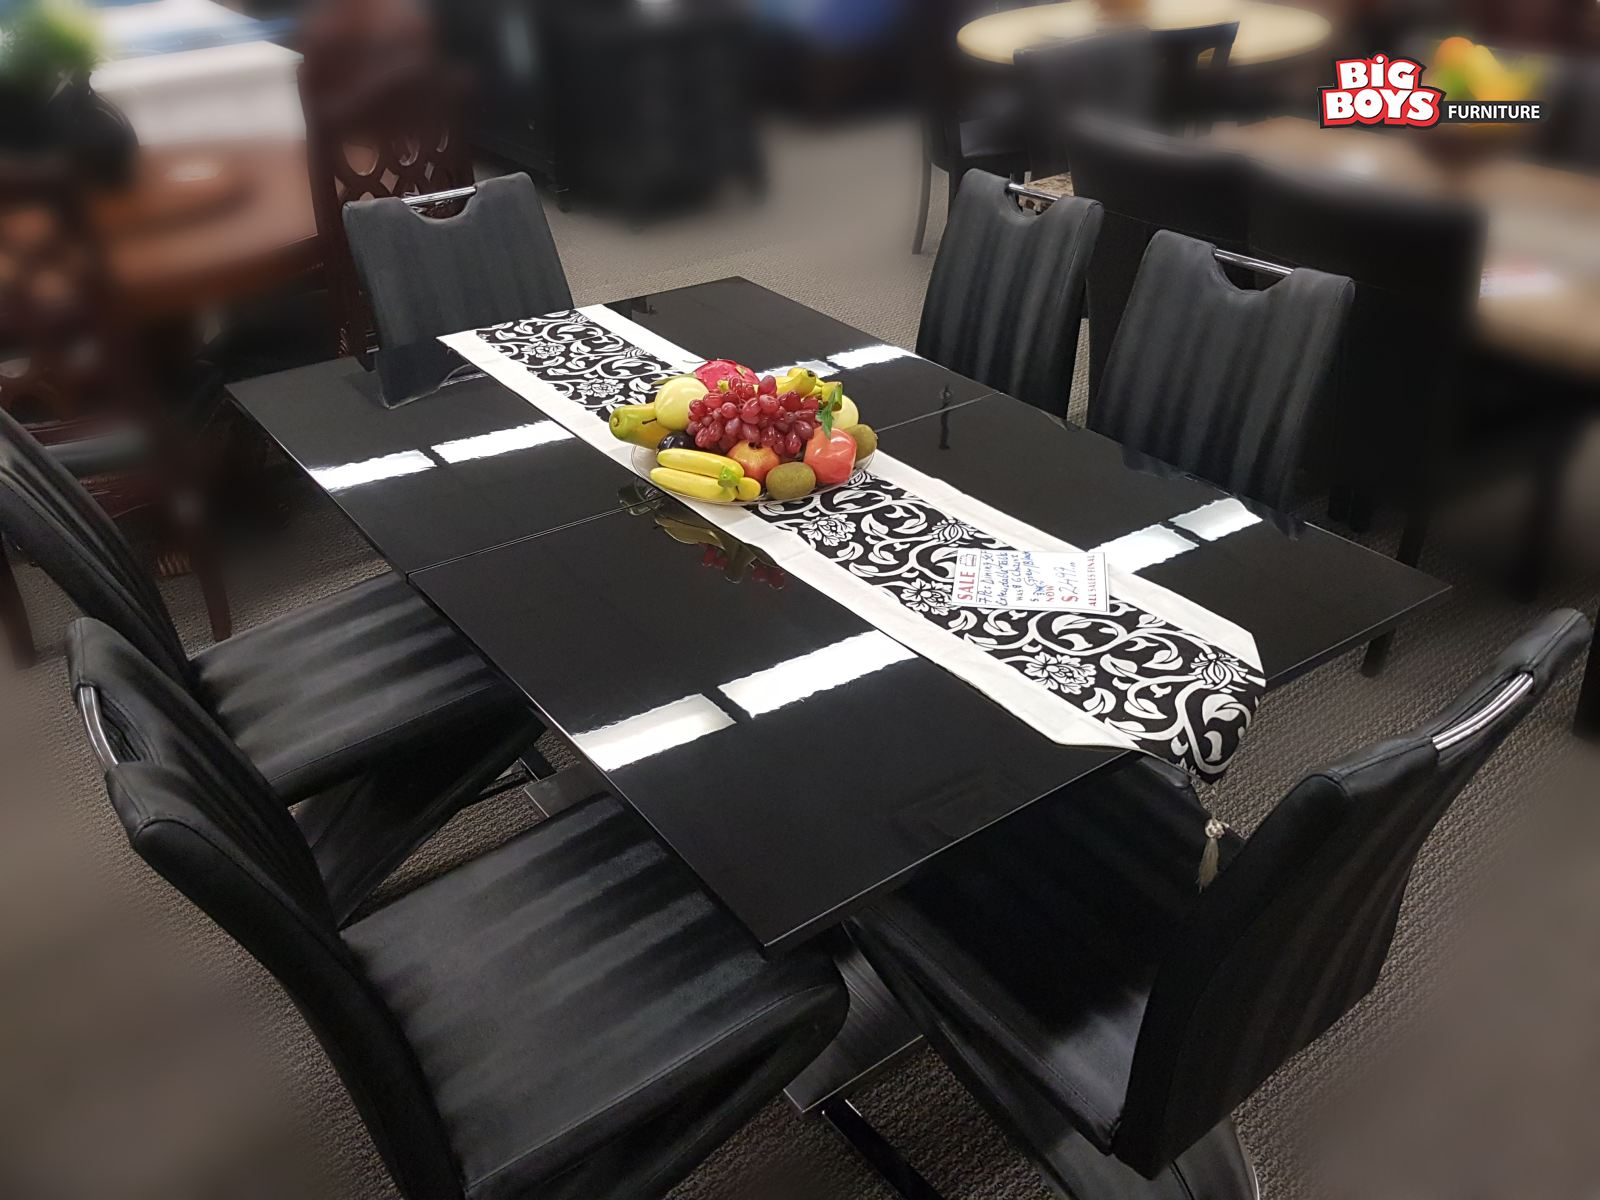 Unique designs in Dinning Sets at Big Boys Furniture